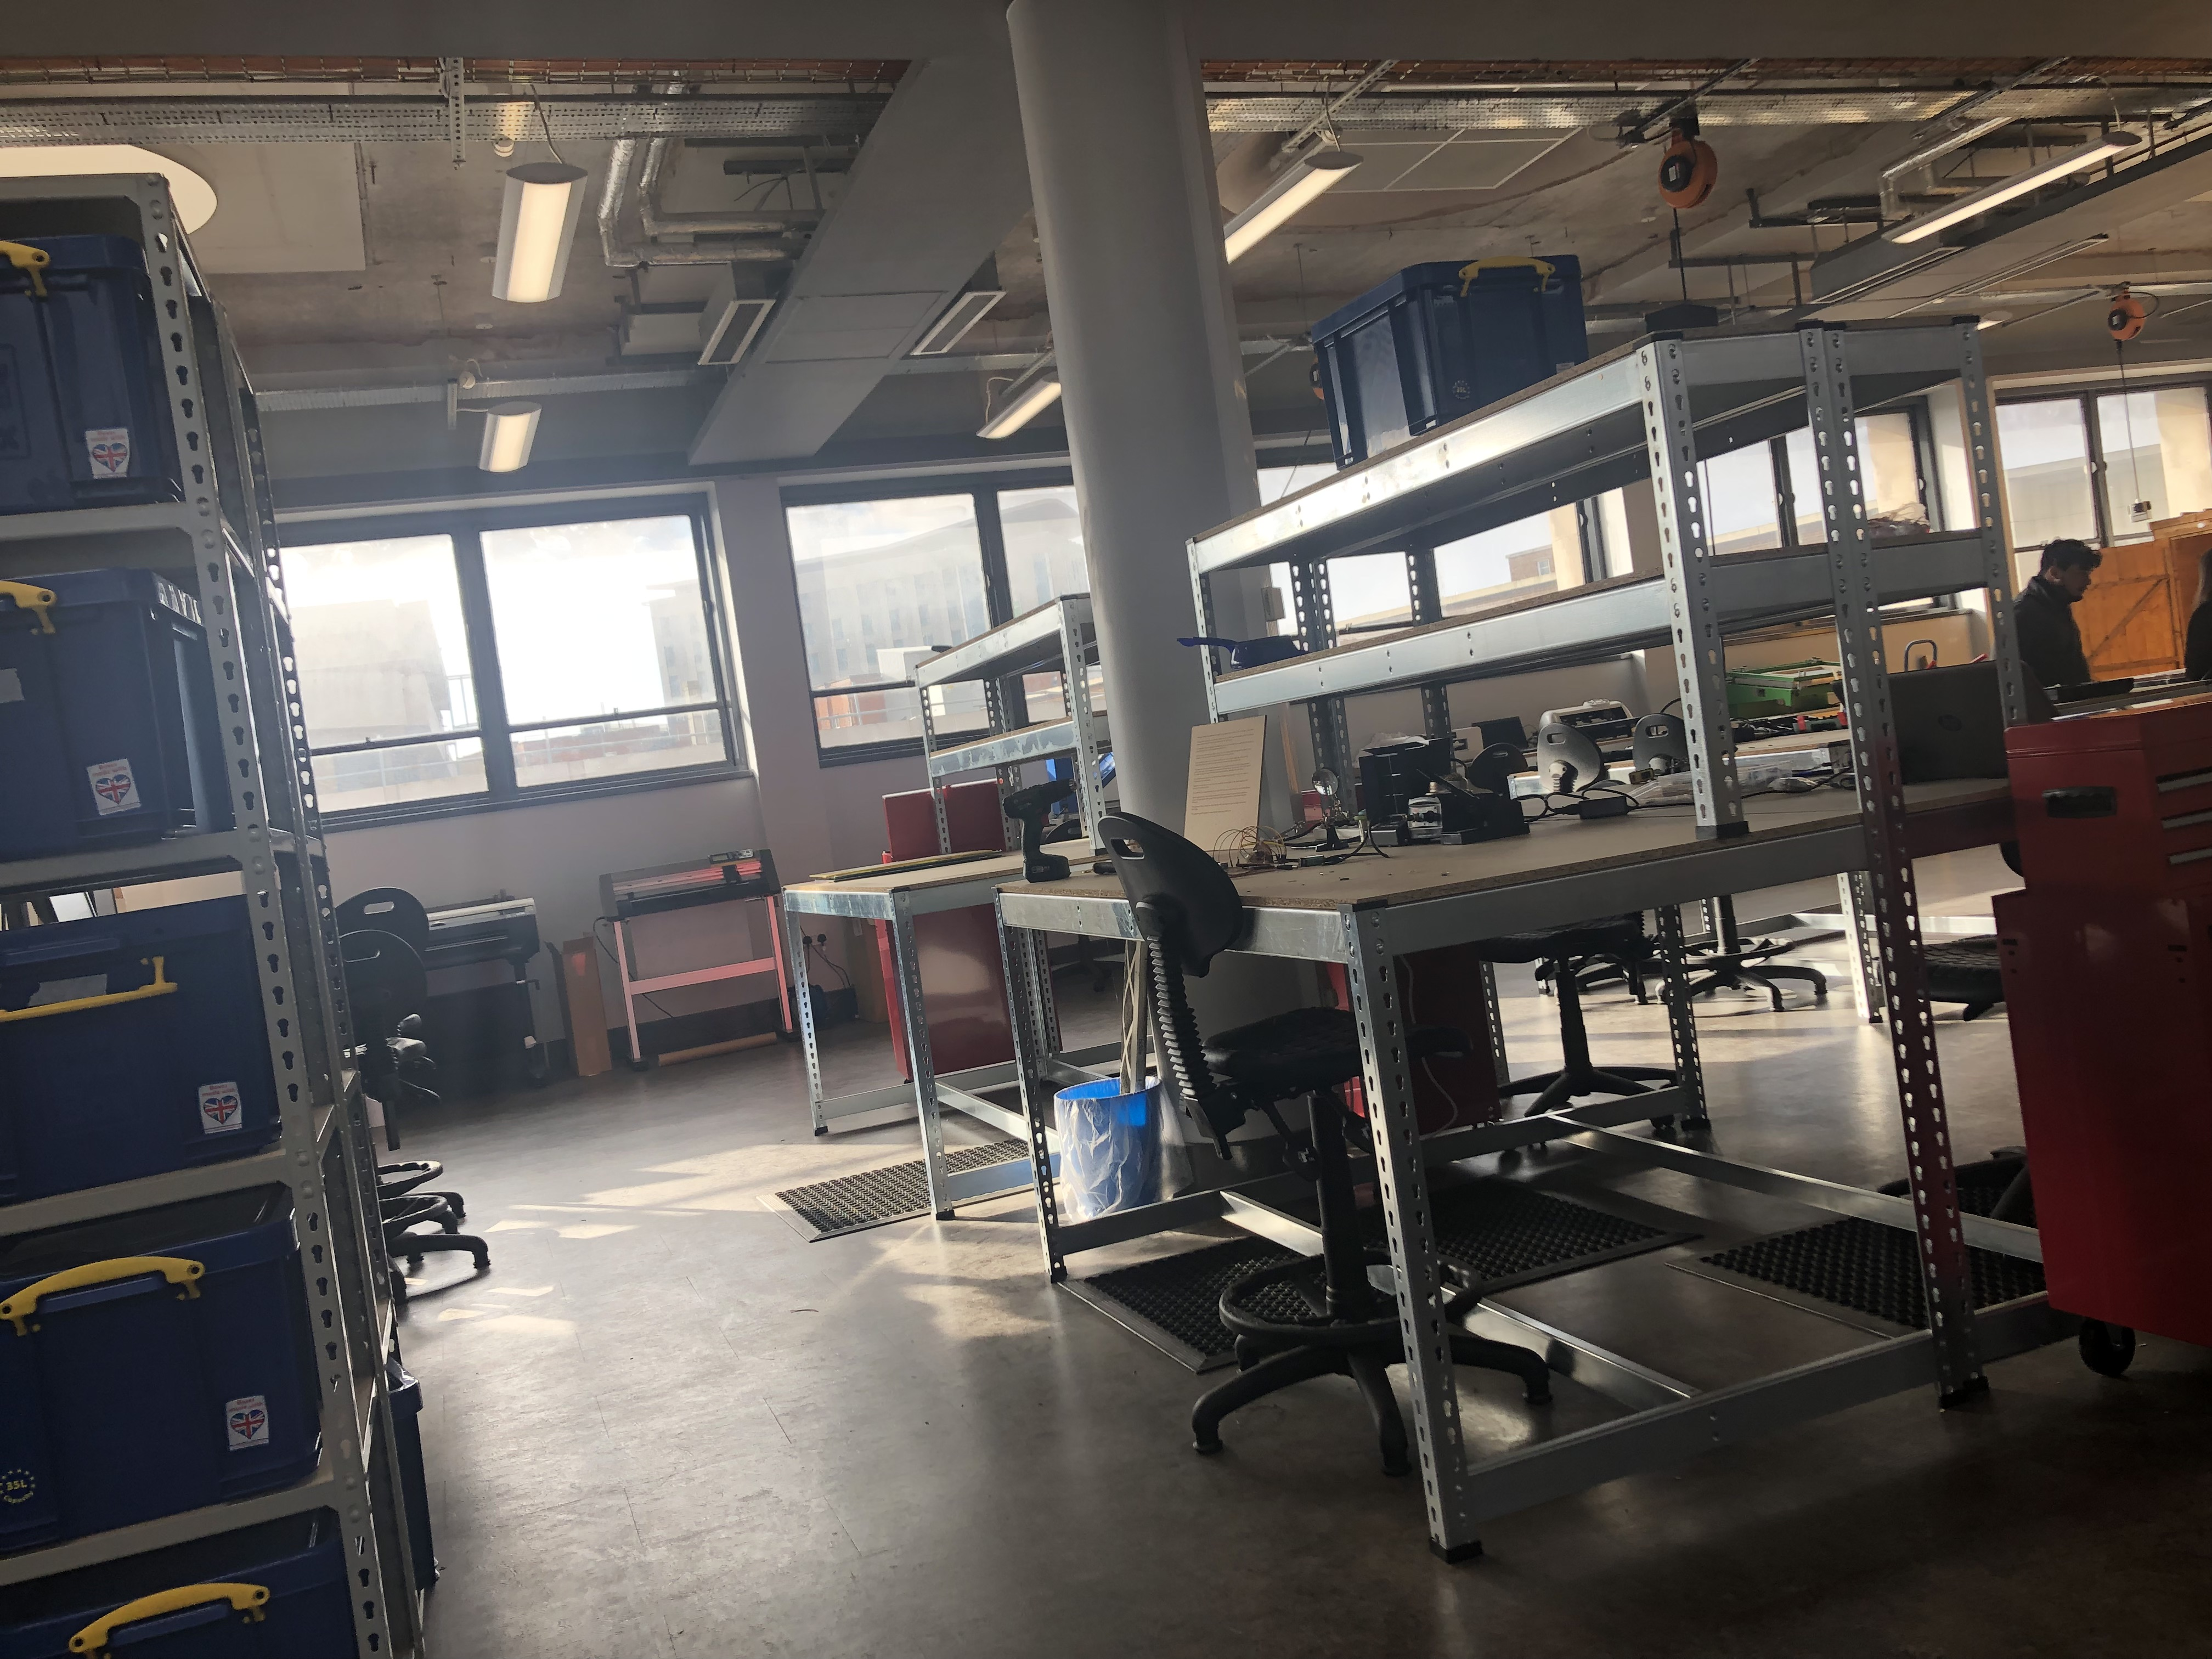 A view of the storage area and electronics area at the Makerspace